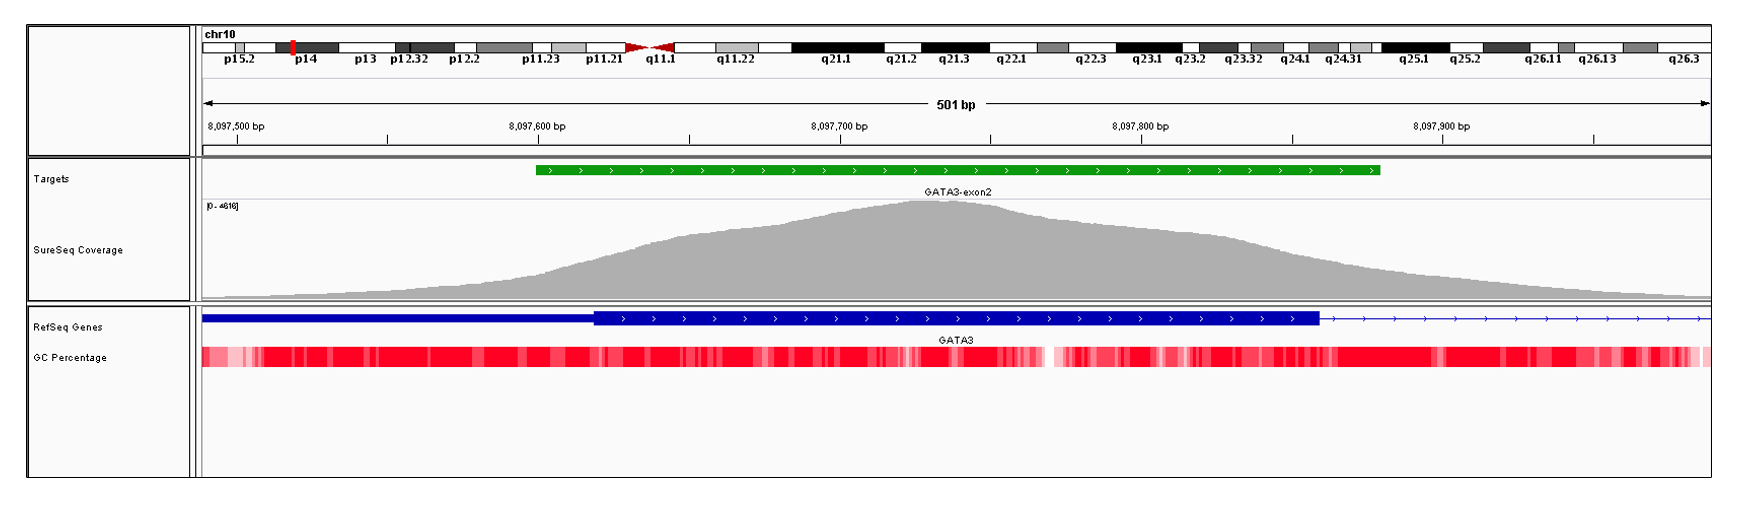 GATA3 Exon 2 (hg19 chr10:8097250-8097859). Depth of coverage per base (grey). Targeted region (green). Gene coding region as defined by RefSeq (blue). GC percentage (red). Image